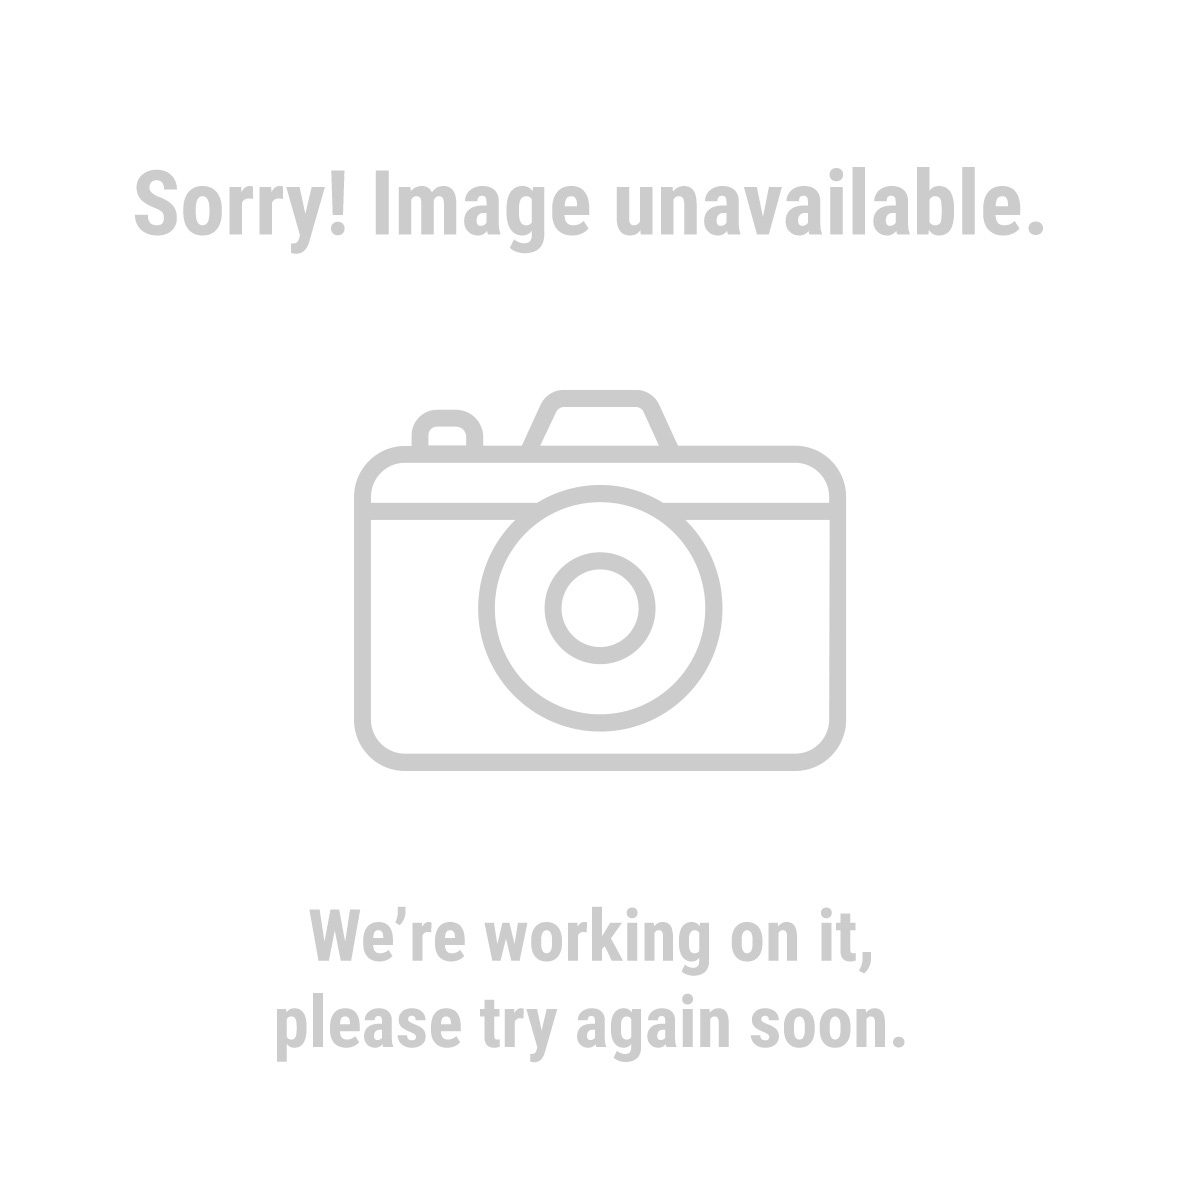 Chicago Electric Power Tools 67119 1-1/2 HP Variable Speed Plunge Router